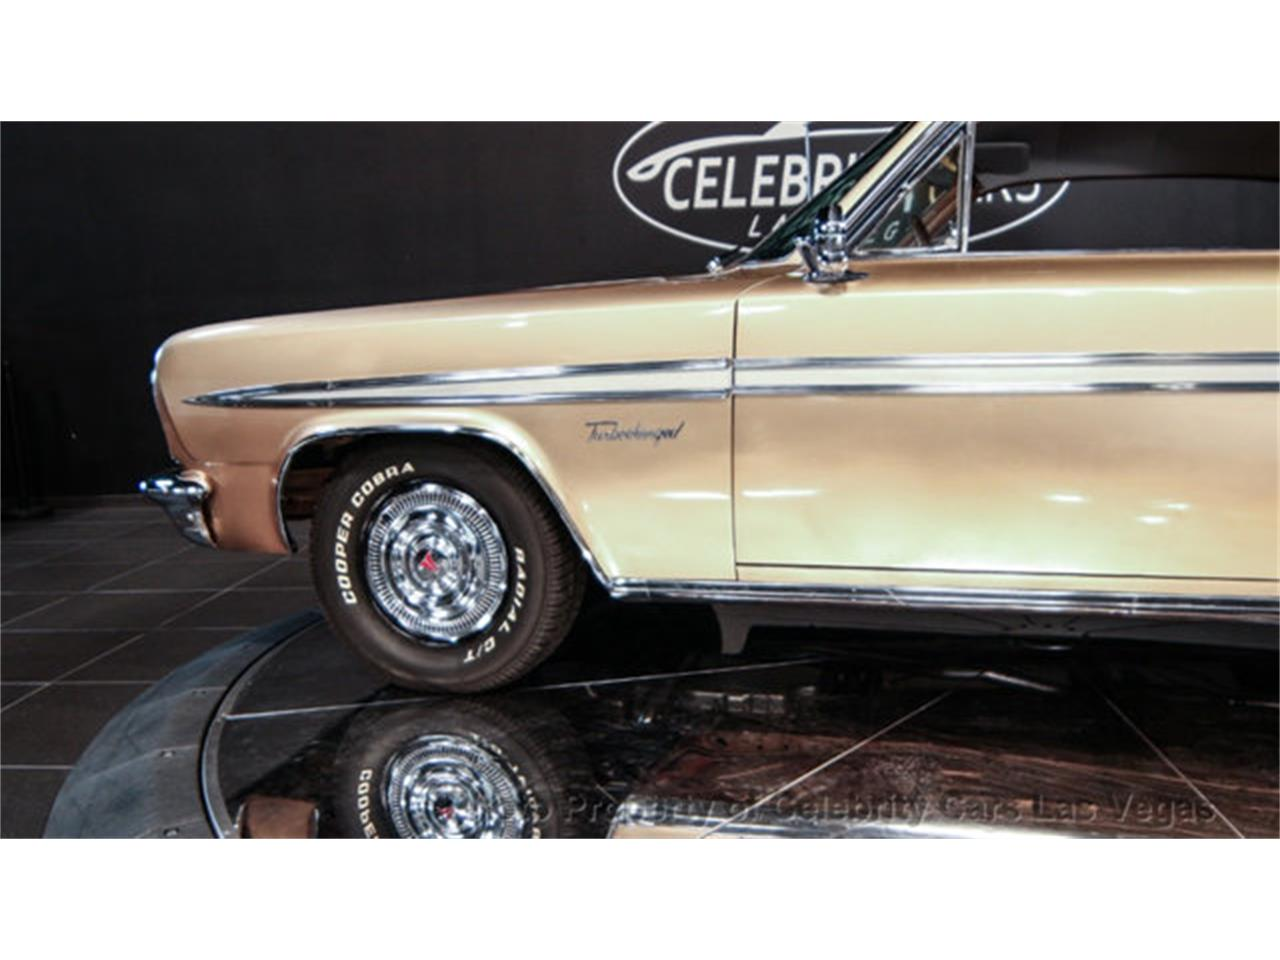 Large Picture of Classic '63 Jet fire Turbocharged - $61,500.00 - J98V